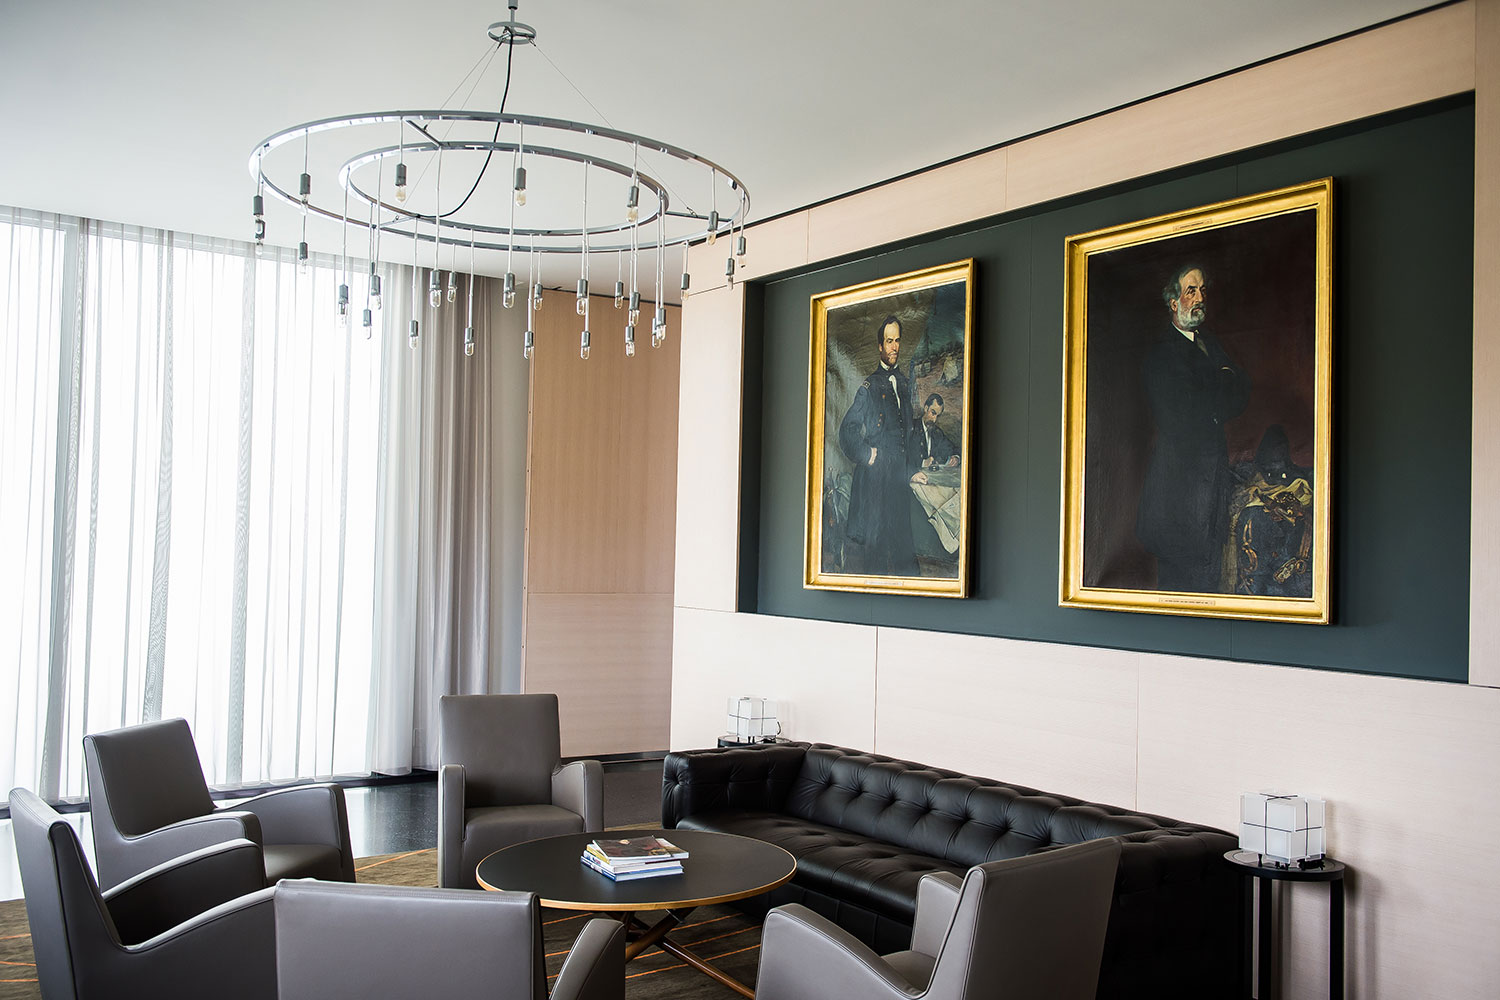 General's Room at the Residence